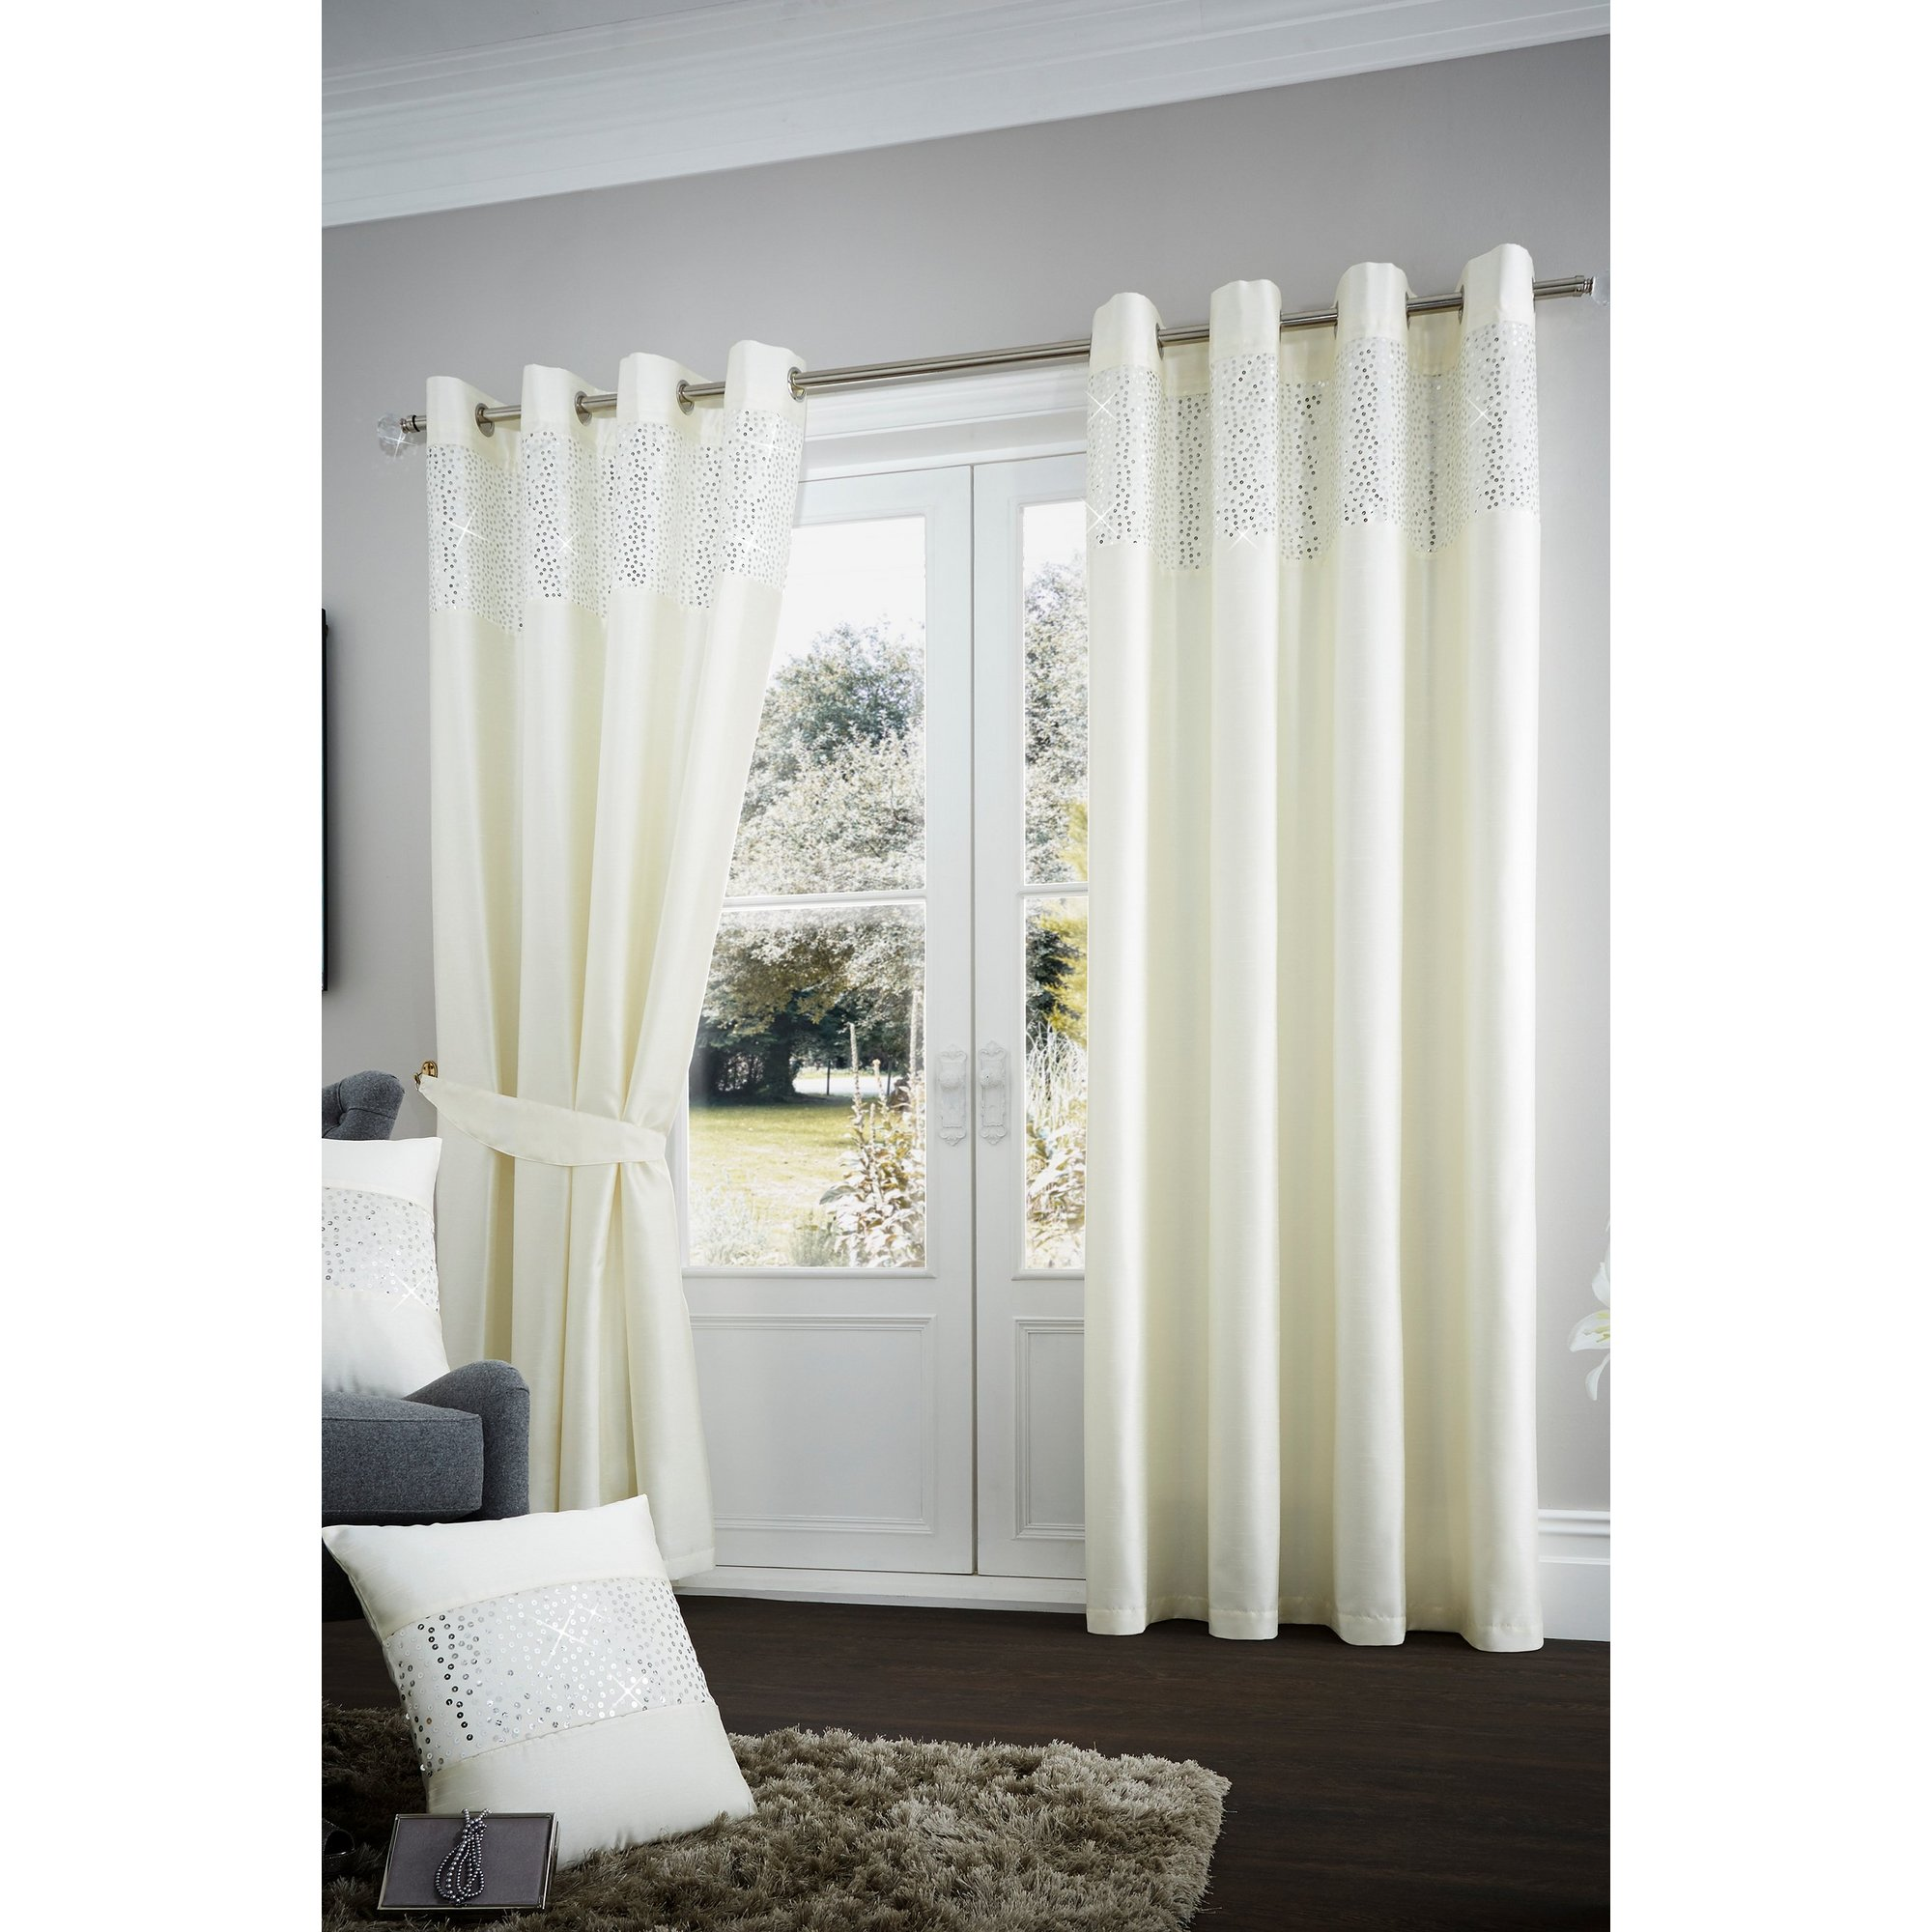 Image of Aviv Eyelet Lined Curtains